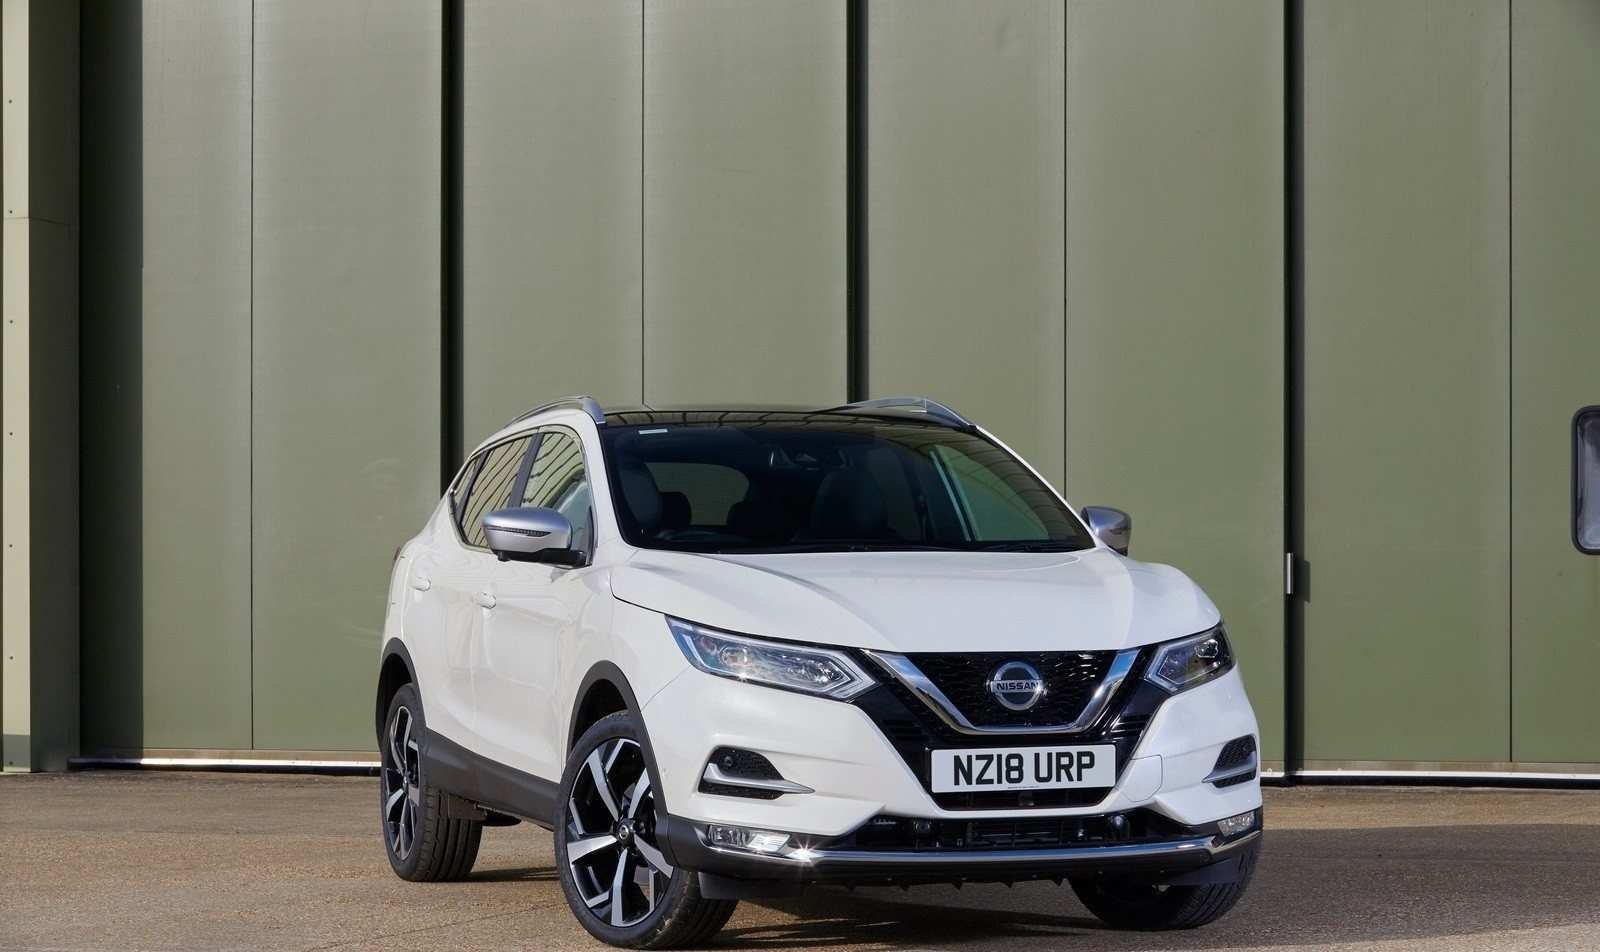 44 New New Nissan Qashqai 2019 Youtube New Engine Release Date by New Nissan Qashqai 2019 Youtube New Engine